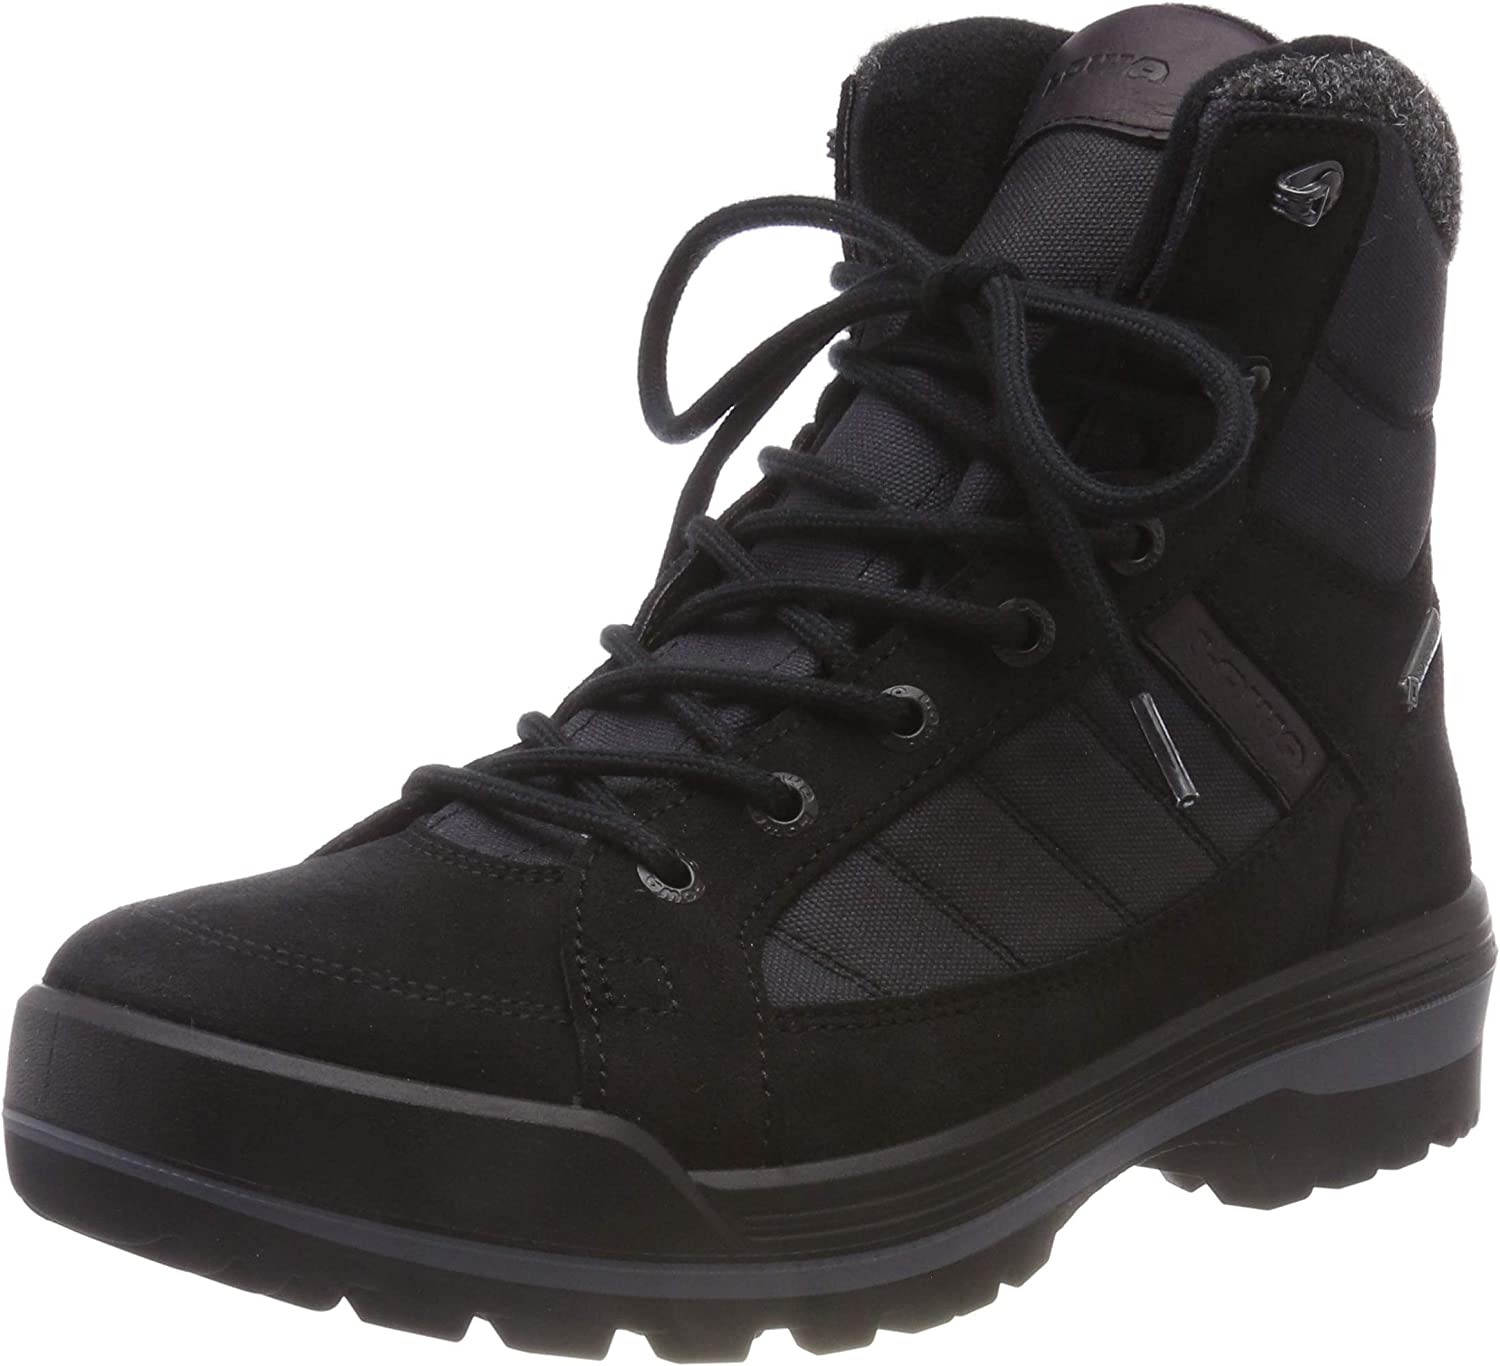 Lowa Men's Isarco Iii GTX Mid High Rise Hiking shoes